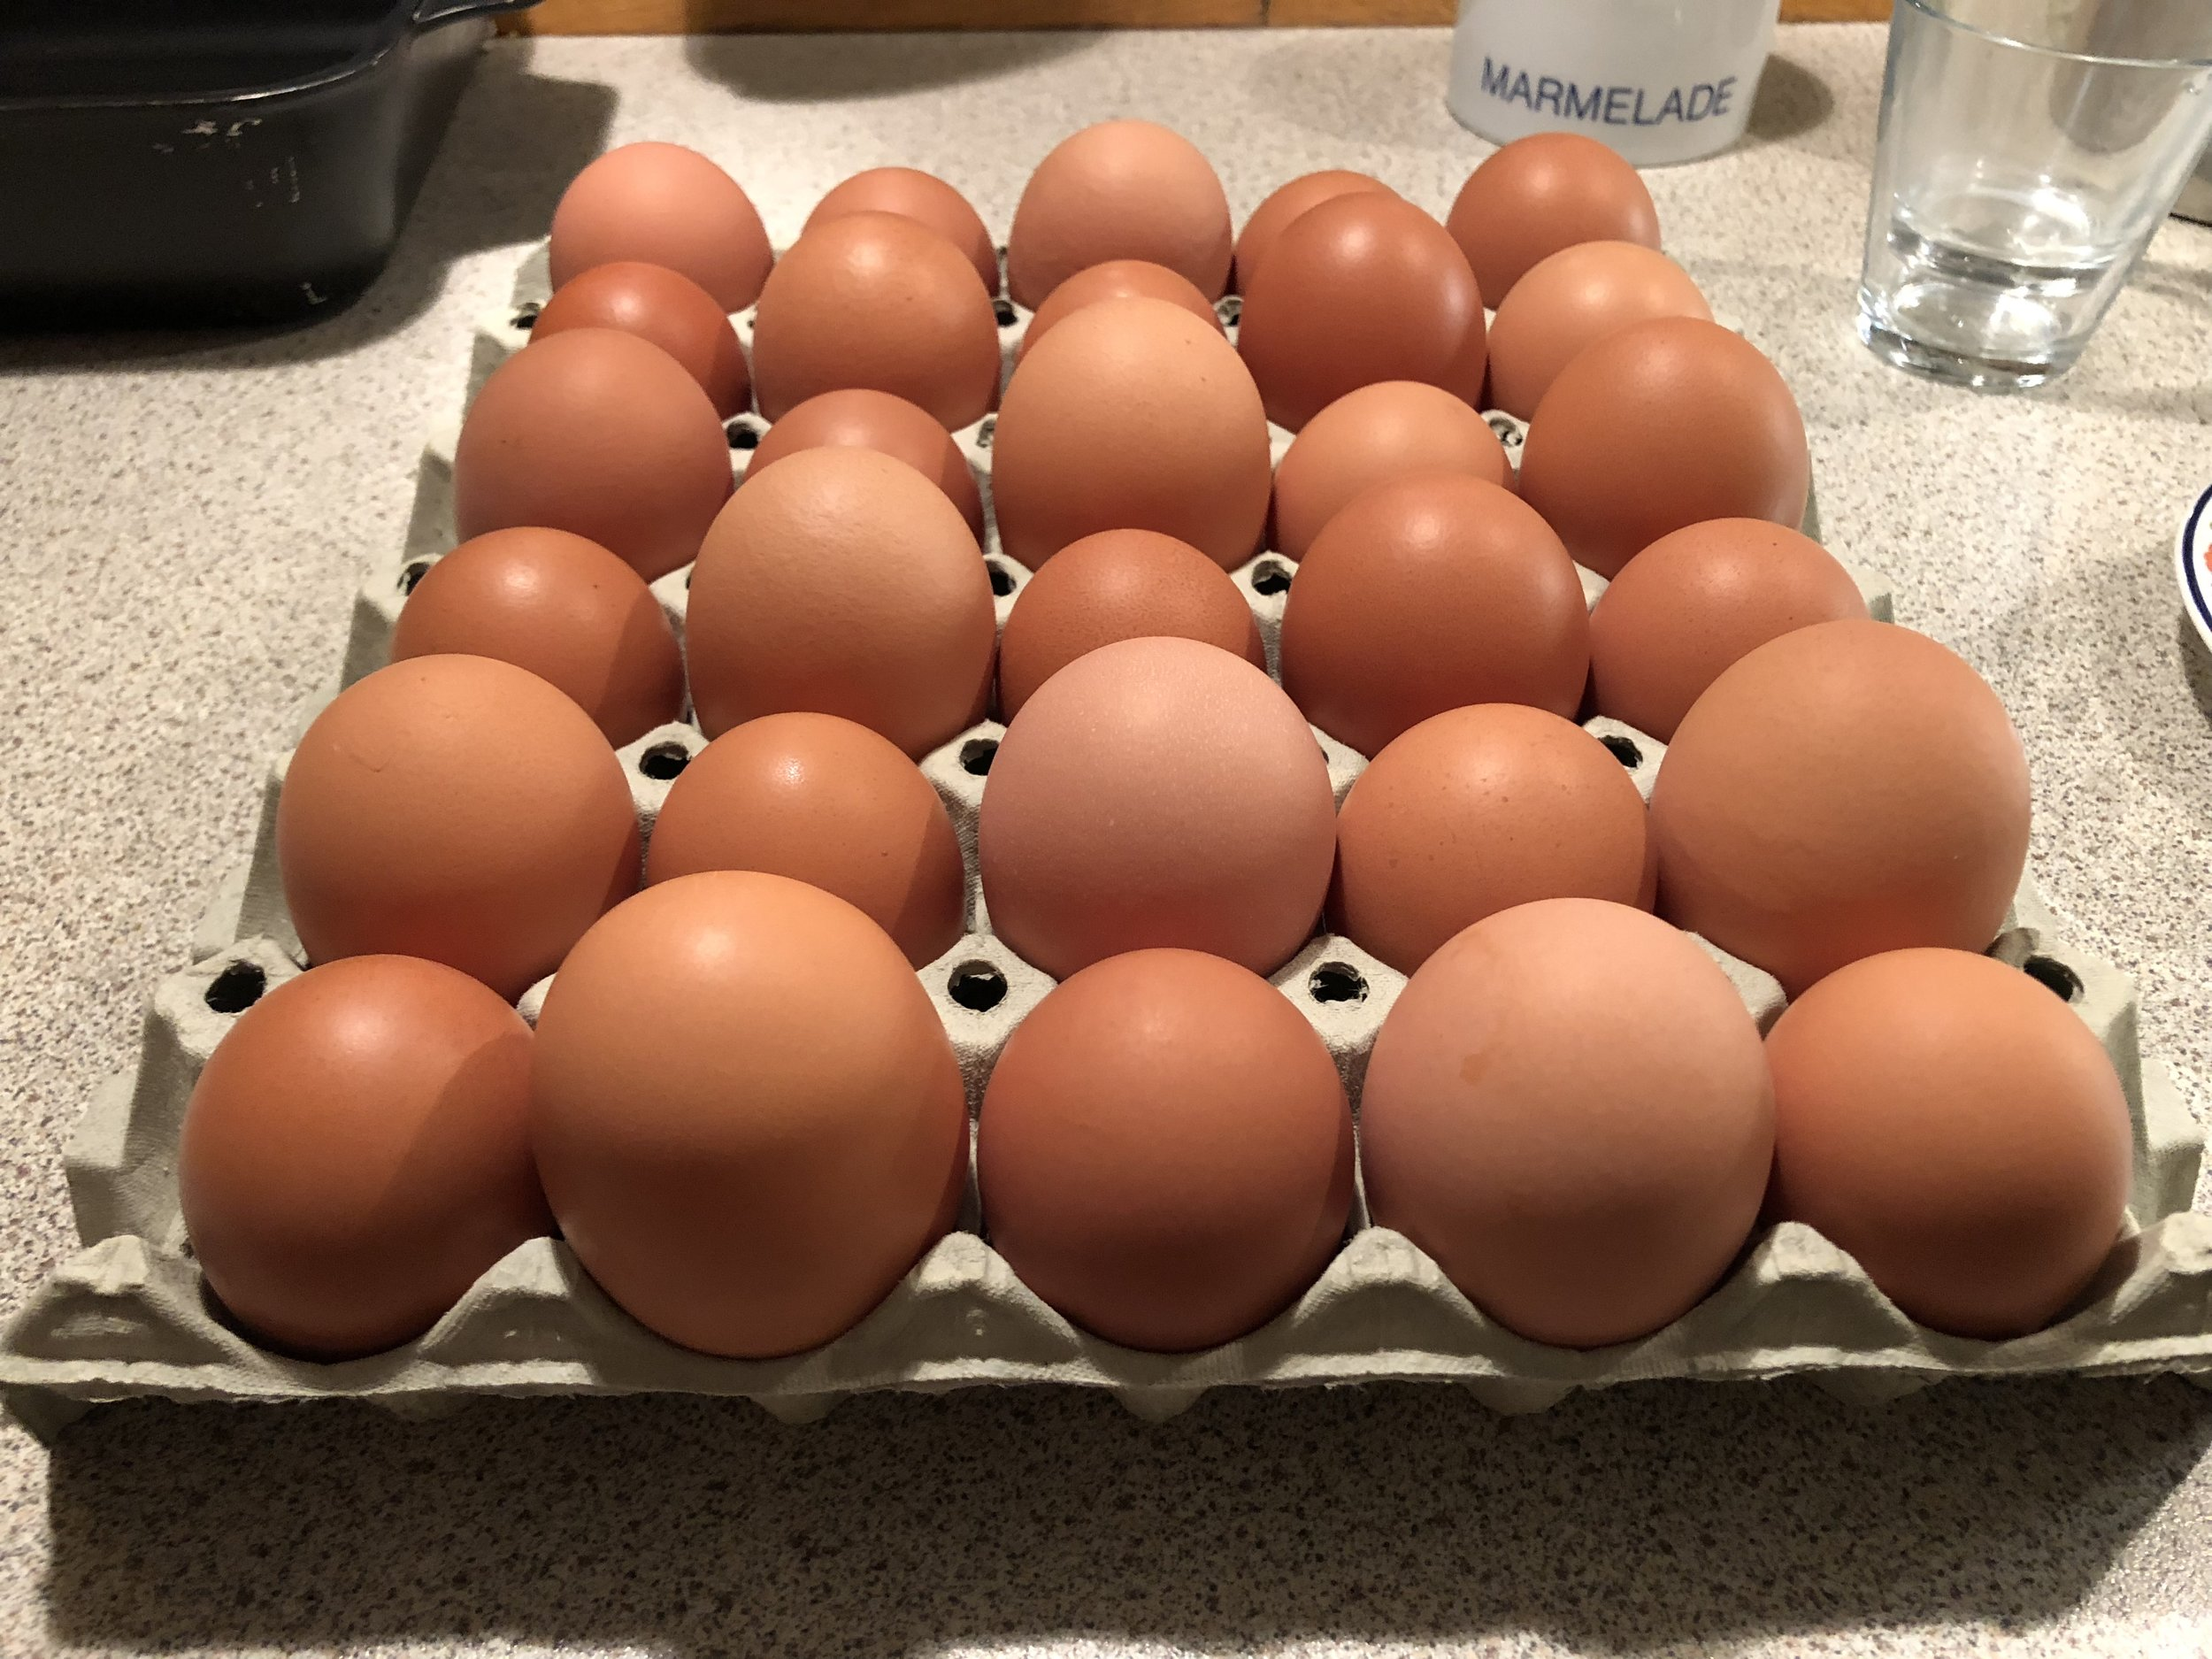 danis egs only come in large and extra large, and they are good!